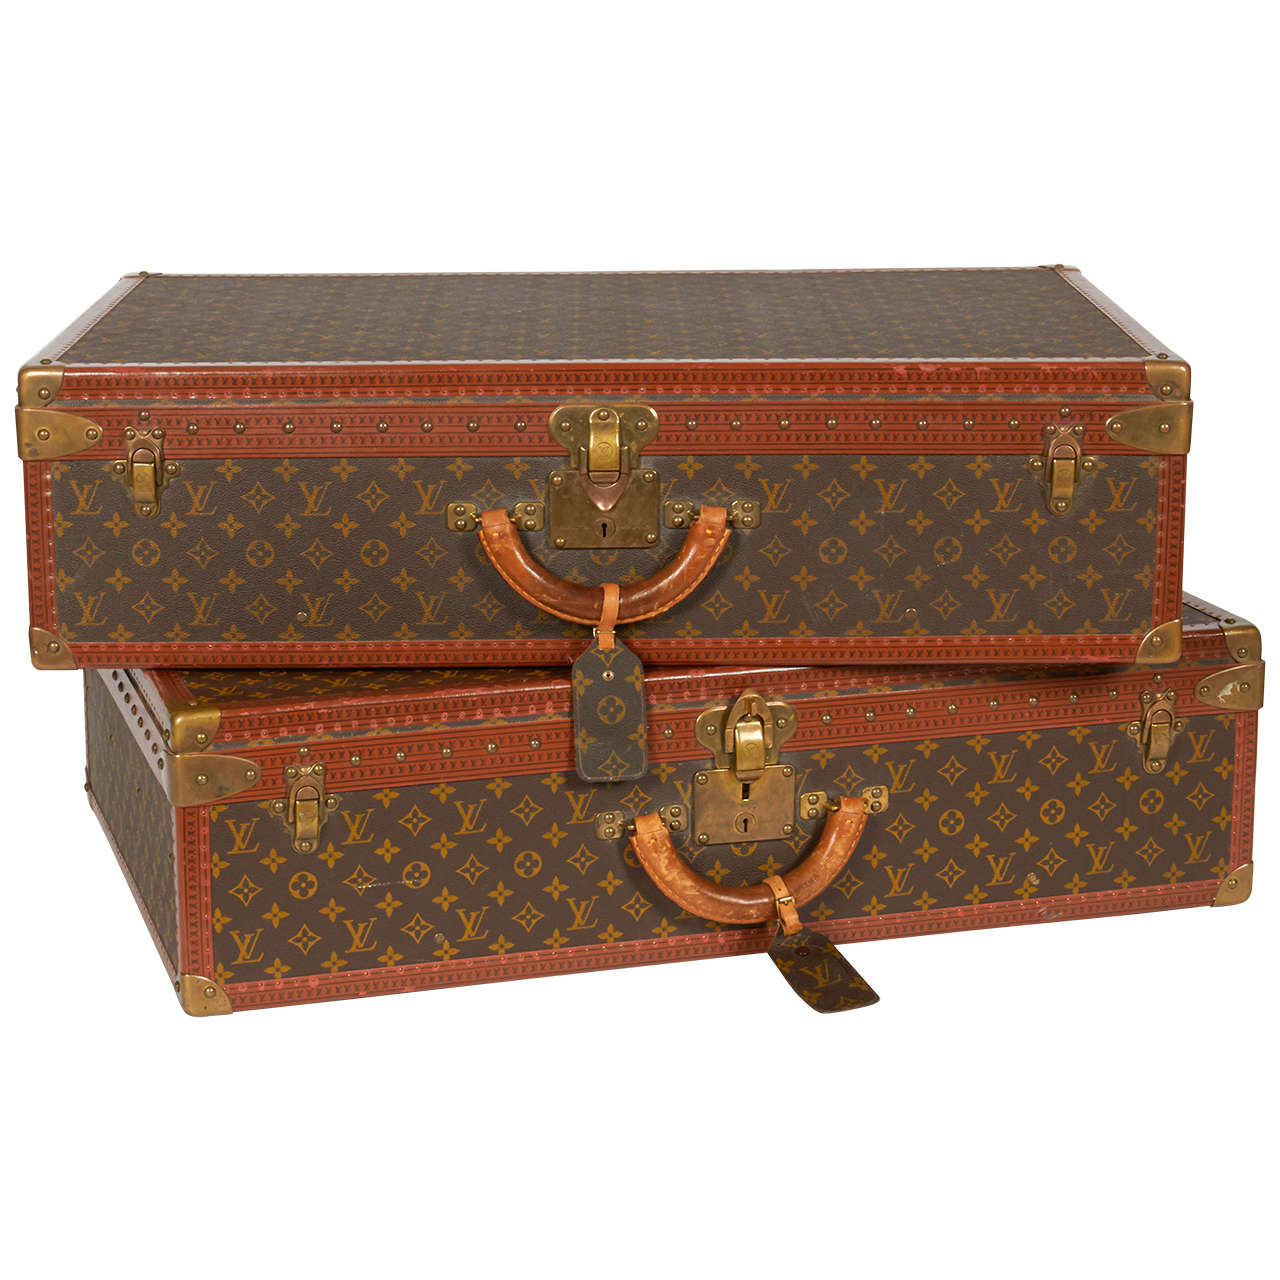 Pair of Vintage Louis Vuitton Alzer Suitcase Trunks at 1stdibs